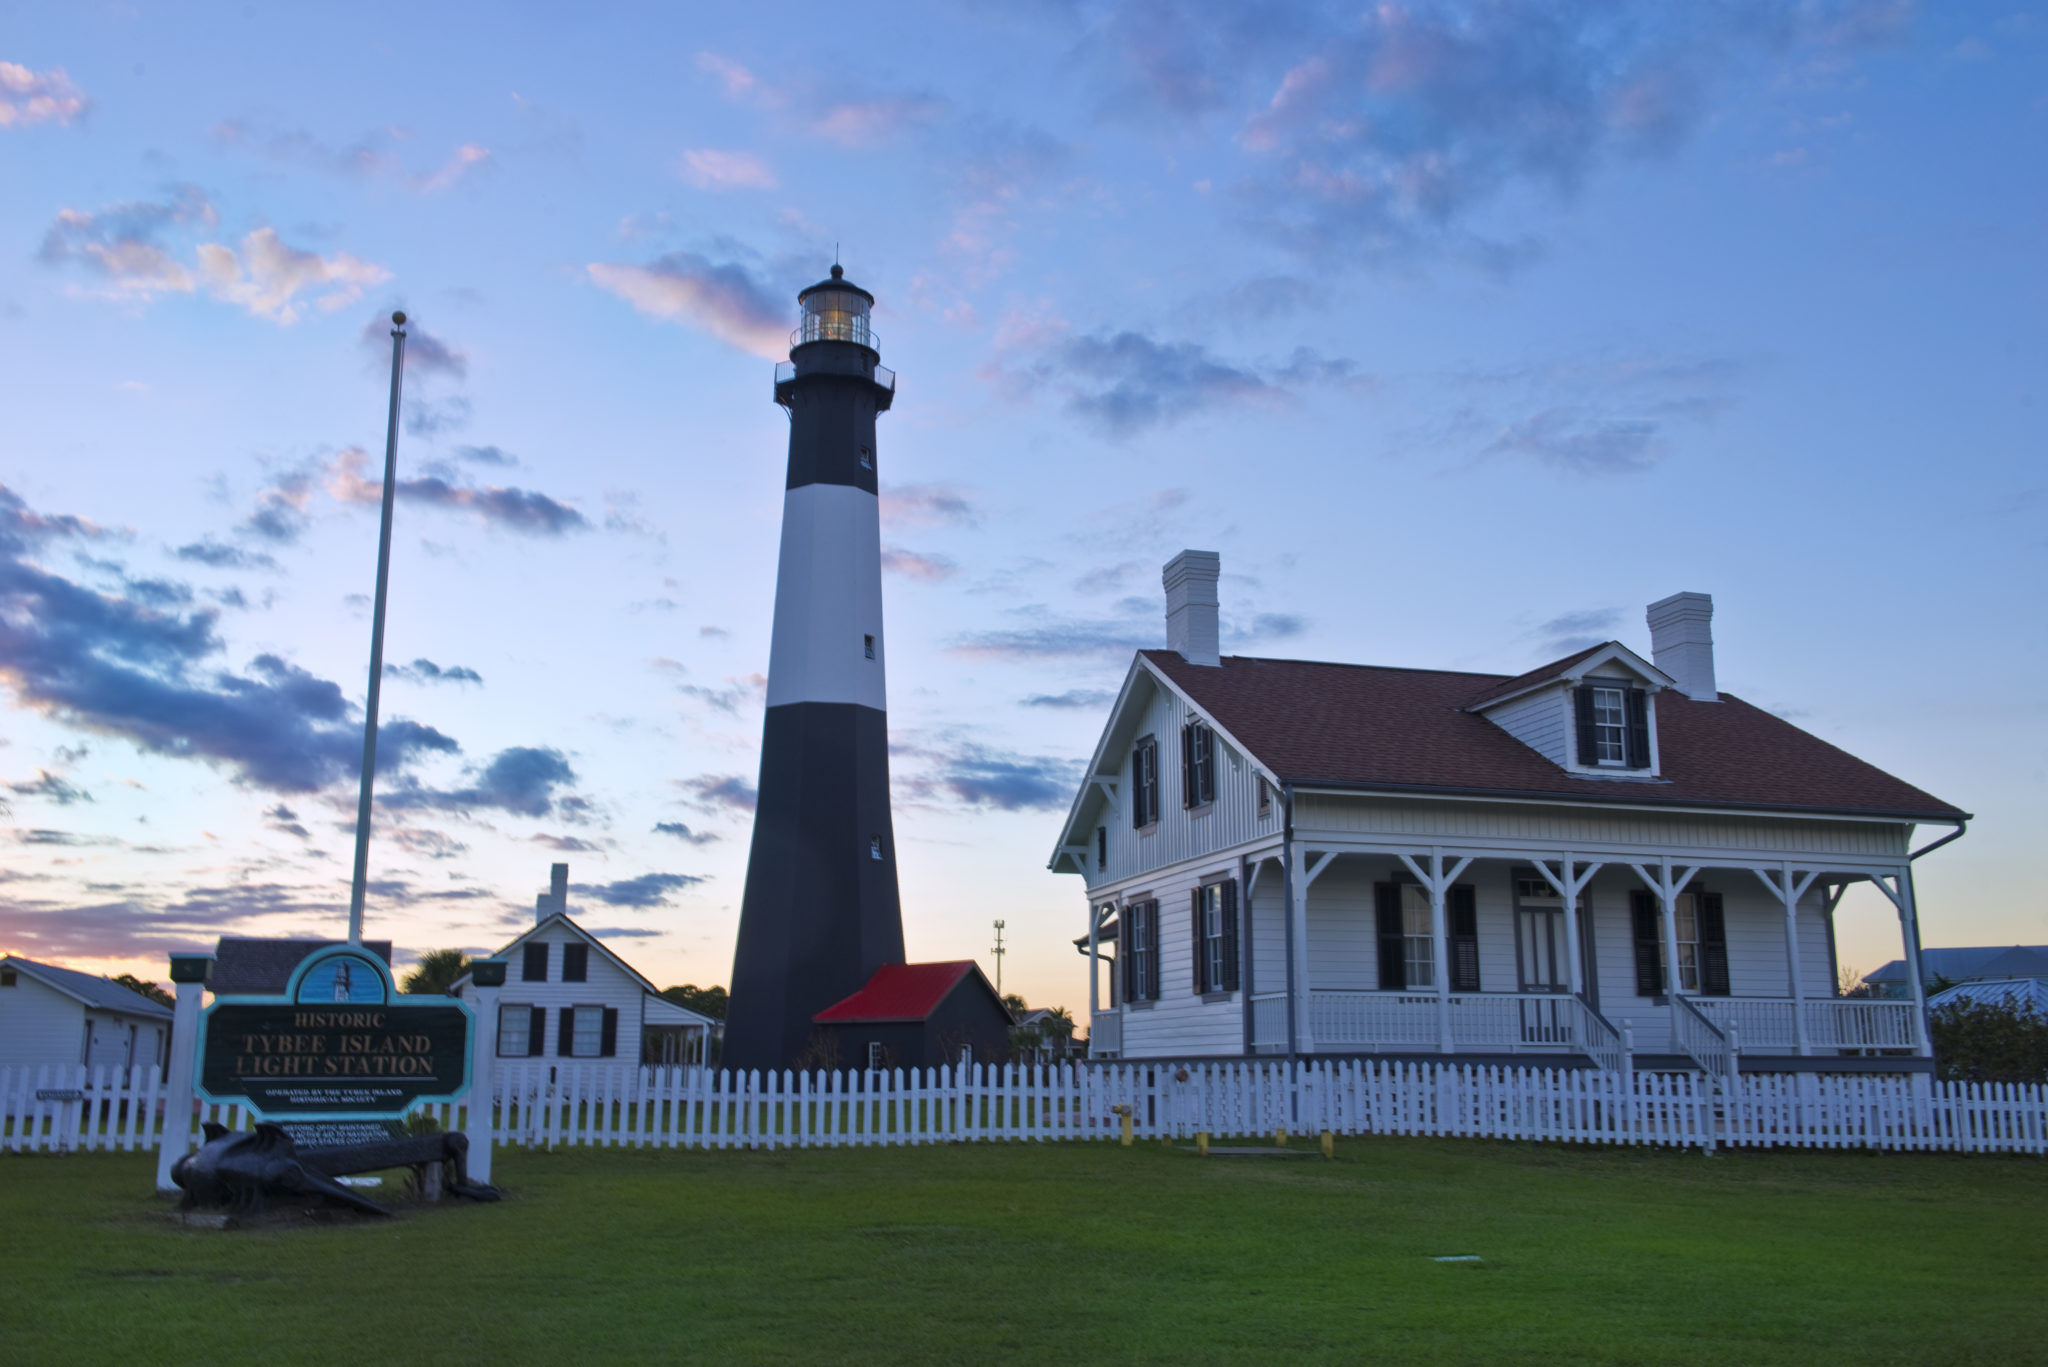 Sunset at the Tybee Island Lighthouse